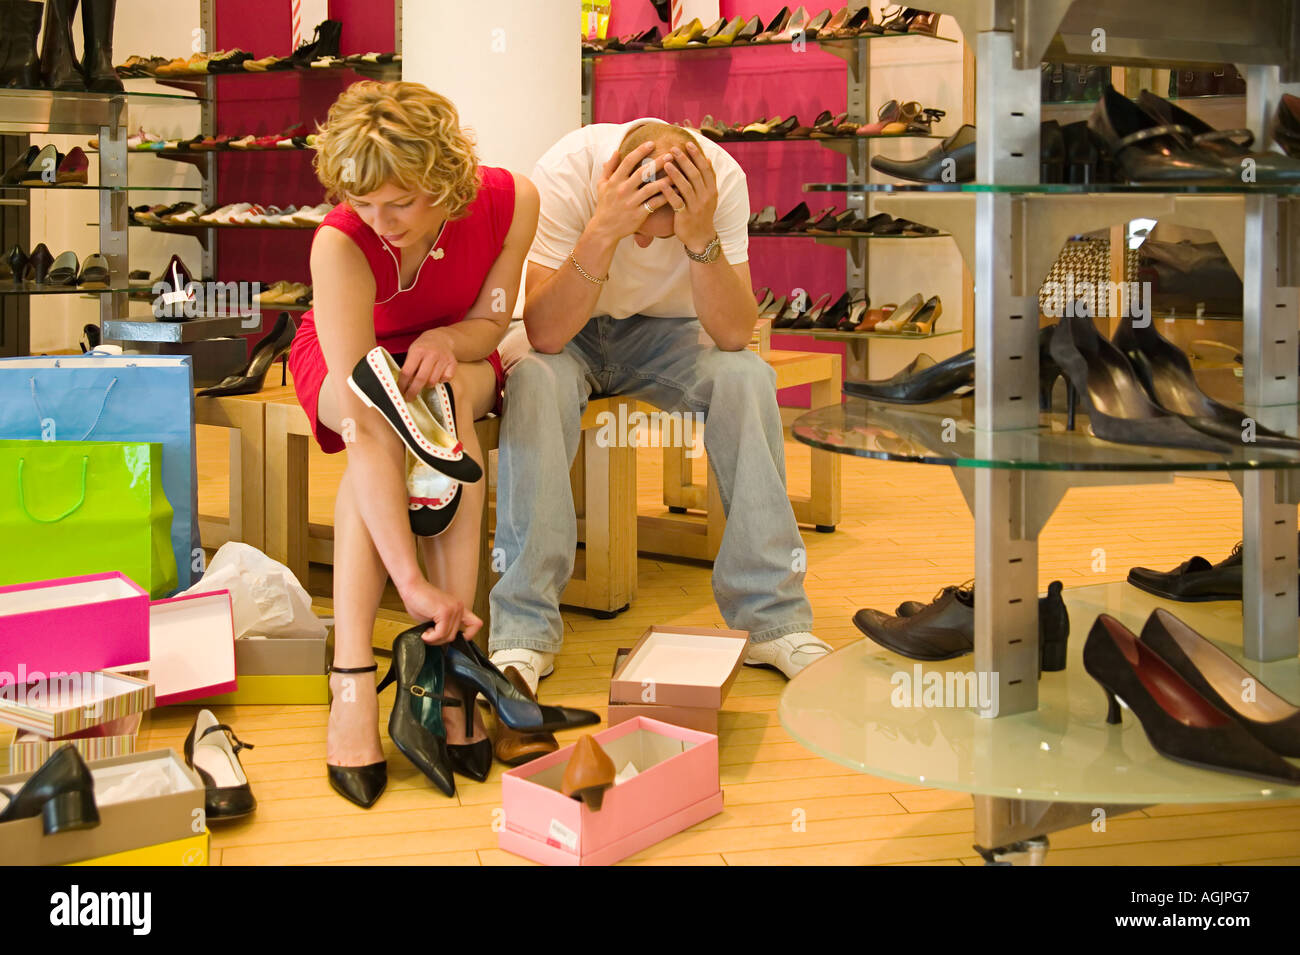 Man despairing as woman chooses shoes - Stock Image